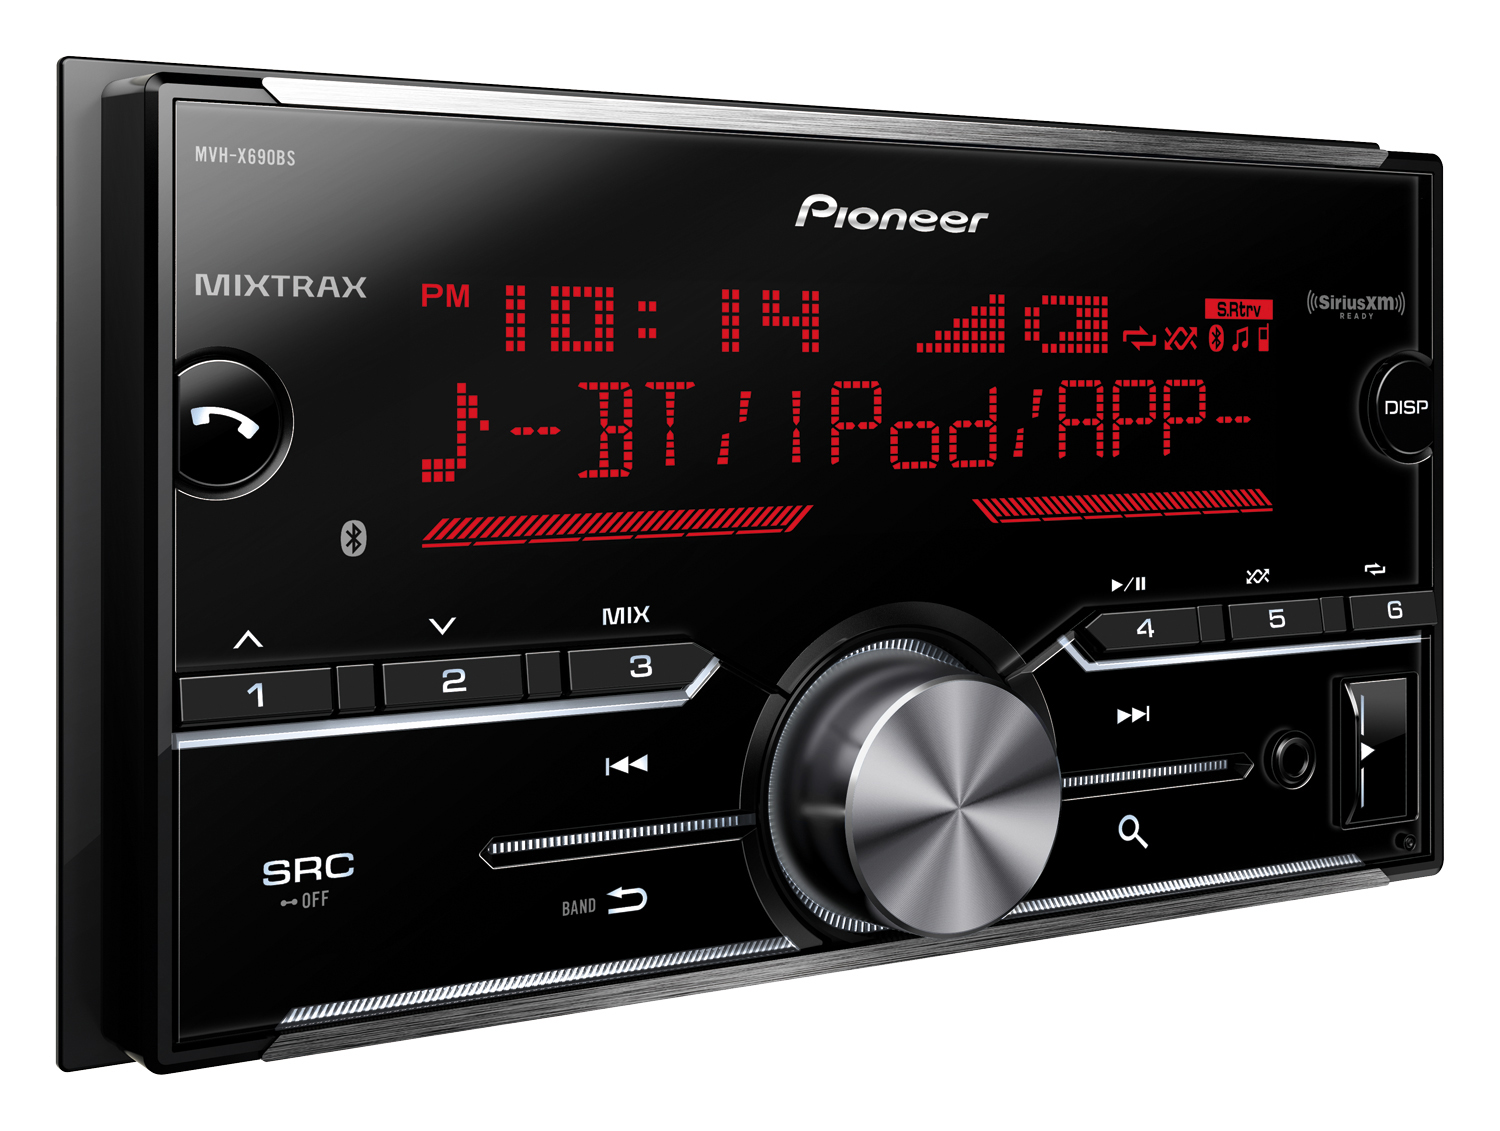 Pioneer MVH-X690BS_300dpi5in